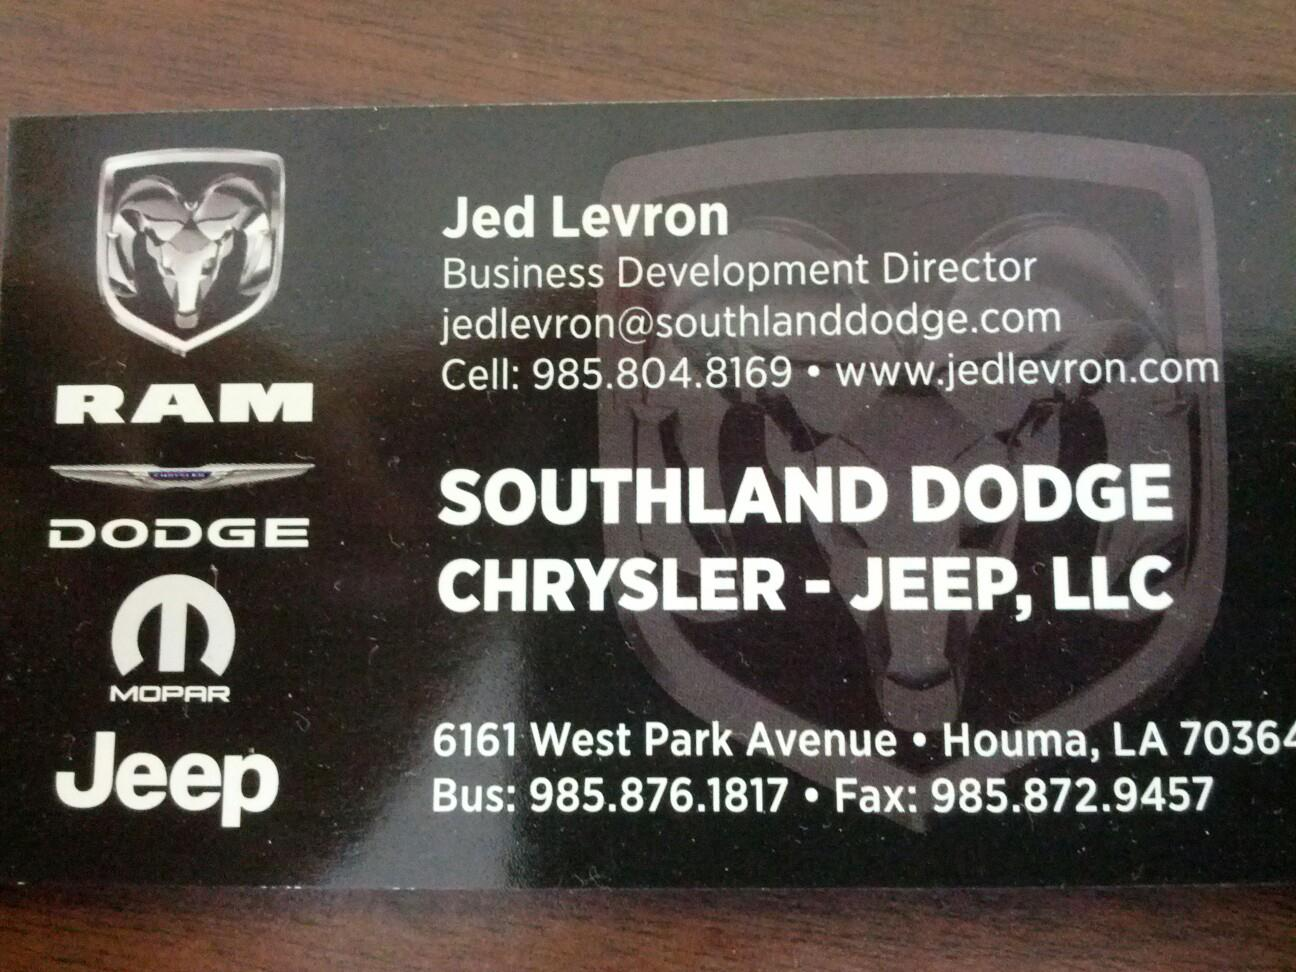 Houma sports april 2013 looking for a new or used vehicle check out southlanddodge and ask for me jed levron reheart Gallery